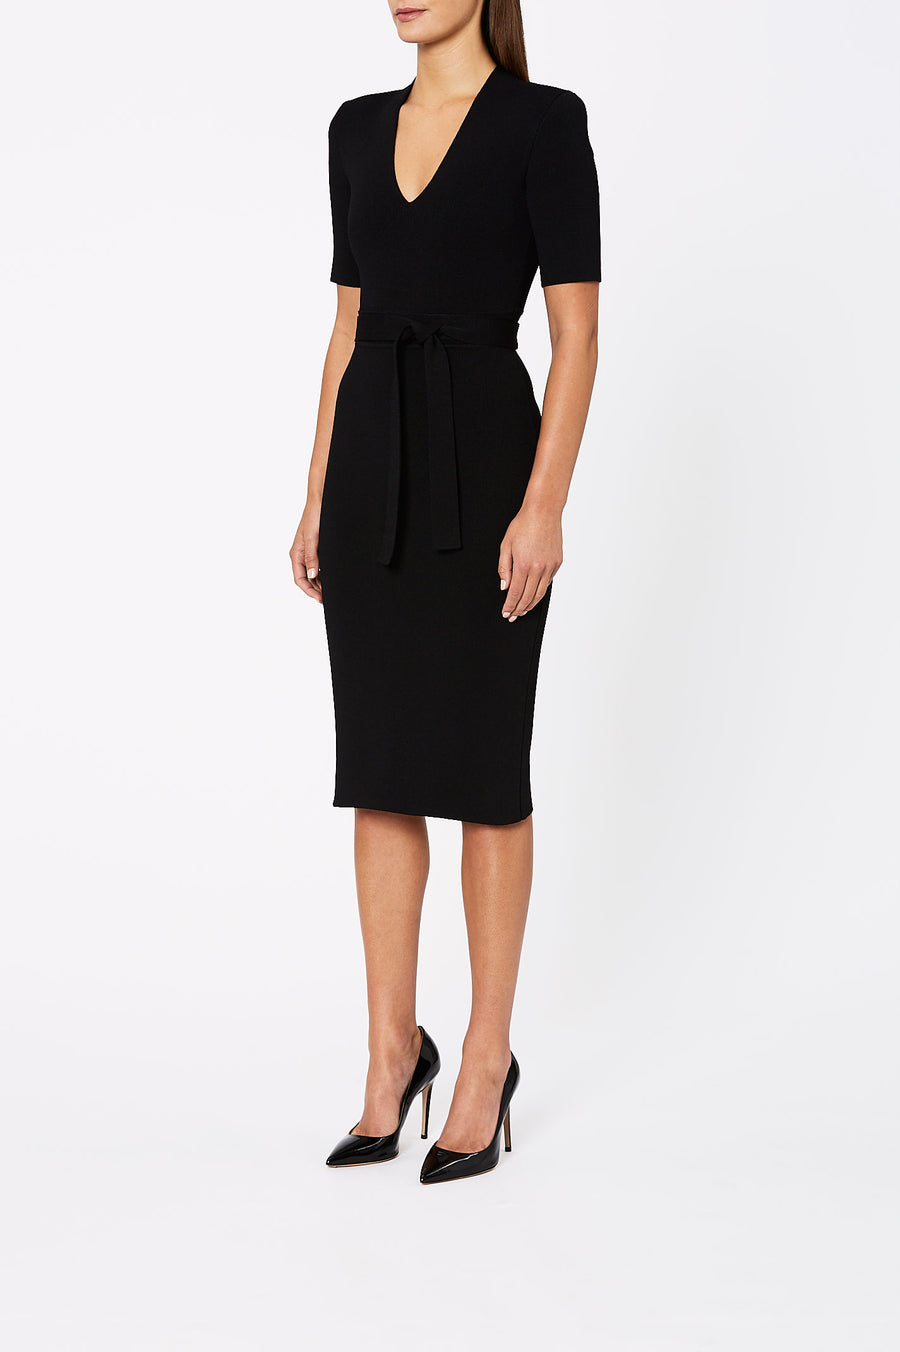 The Crepe Knit V Neck Dress has a fitted silhouette, waist seam belt, mid-length sleeve